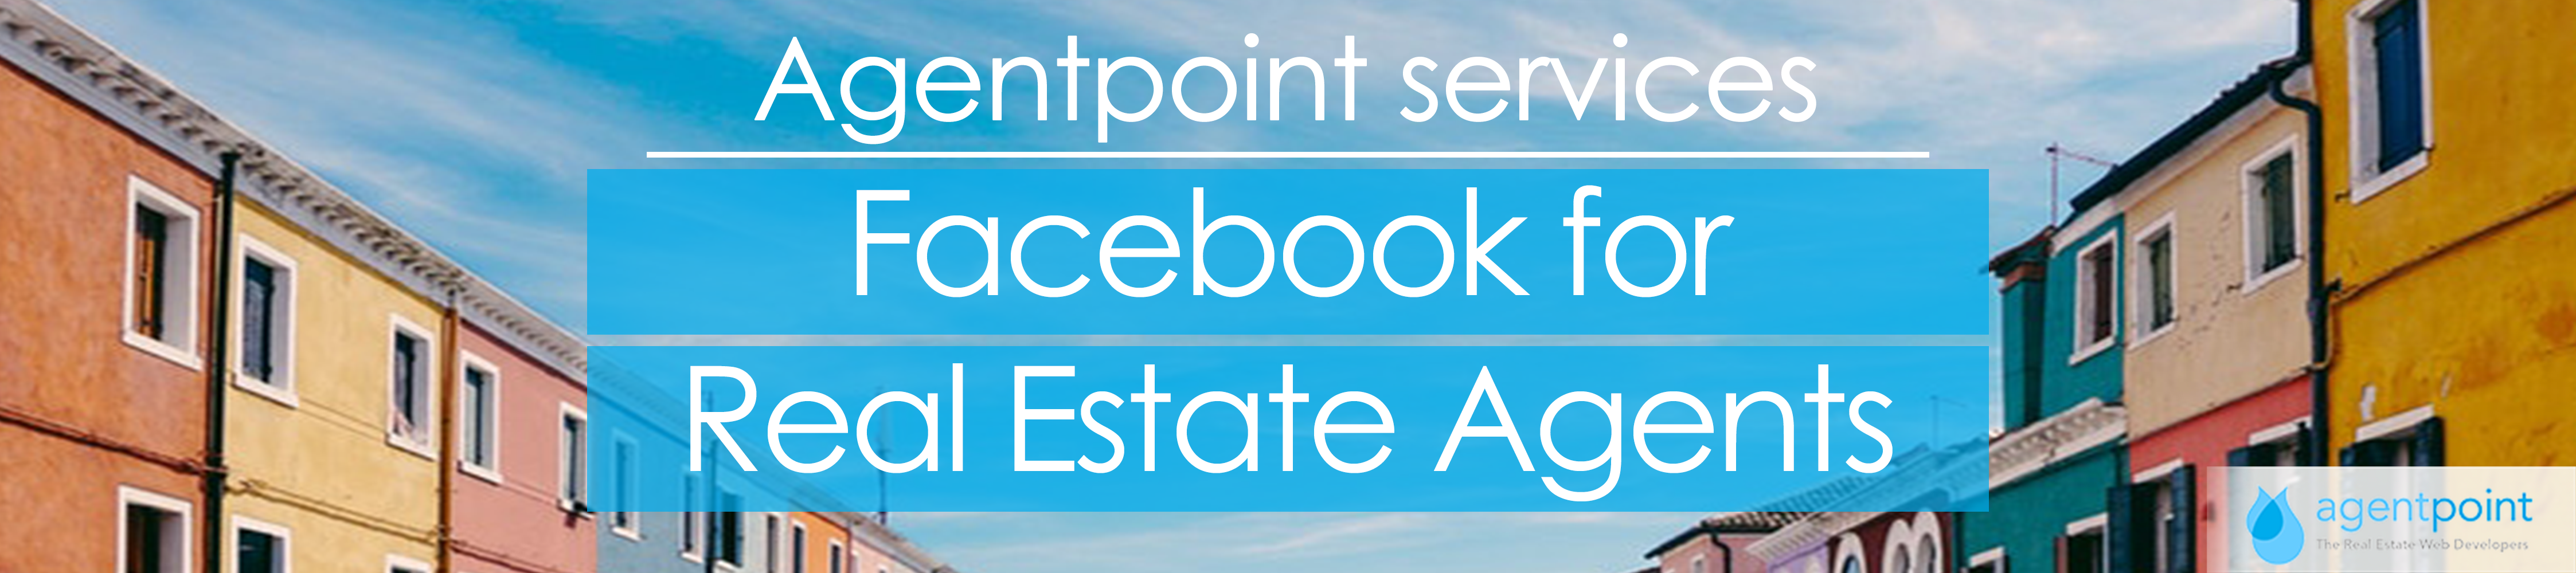 AFacebook for Agents from Agentpoint